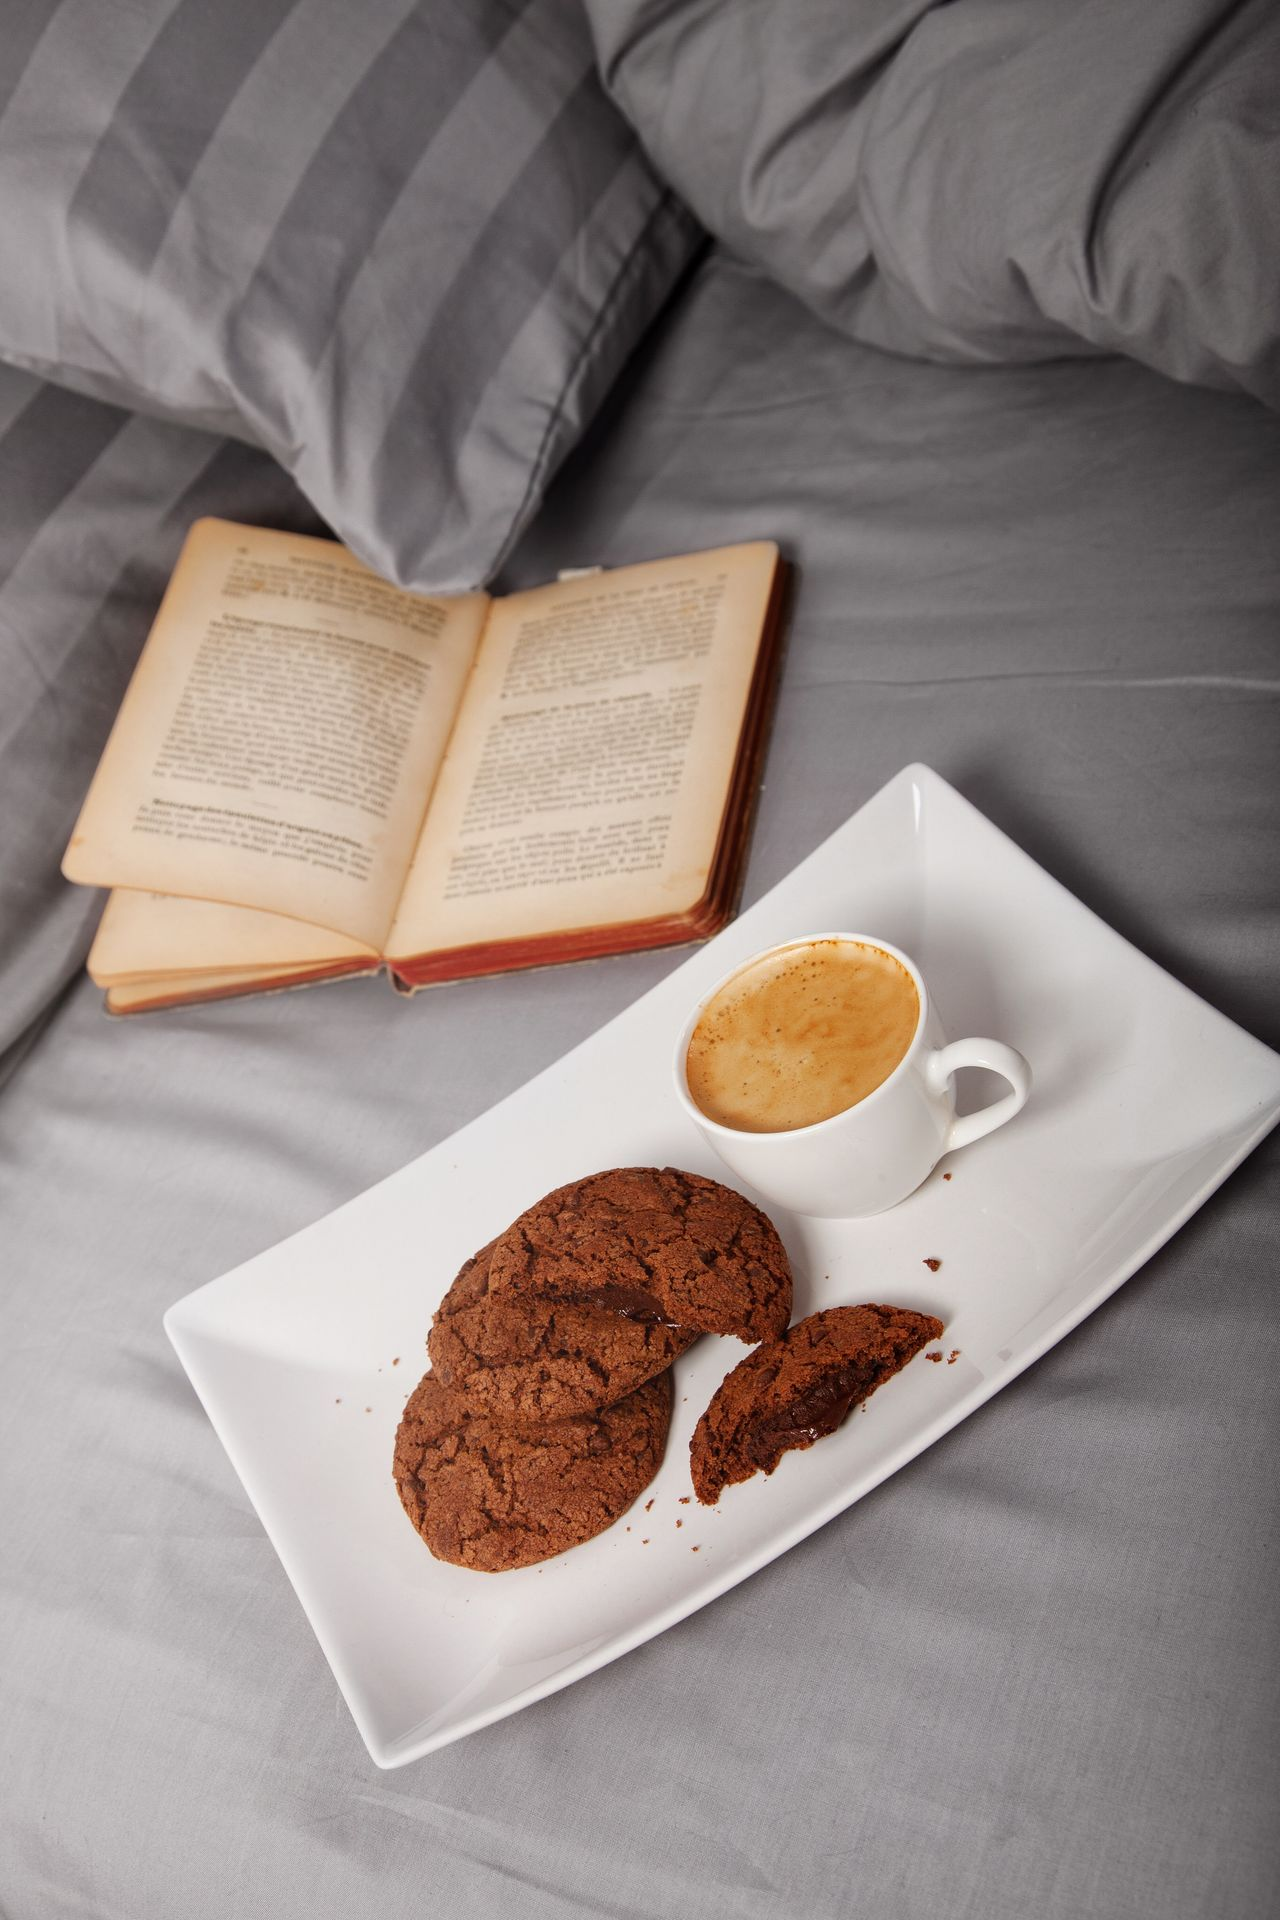 Coffee in bed Coffee - Drink Food And Drink Coffee Cup Indoors  High Angle View Bedroom Drink Book Plate Warm Indoors  Food Close-up Bed Always Be Cozy Relaxation Blanket Linen Pillow Morning Cocooning Espresso Cup Chocolate Cookies